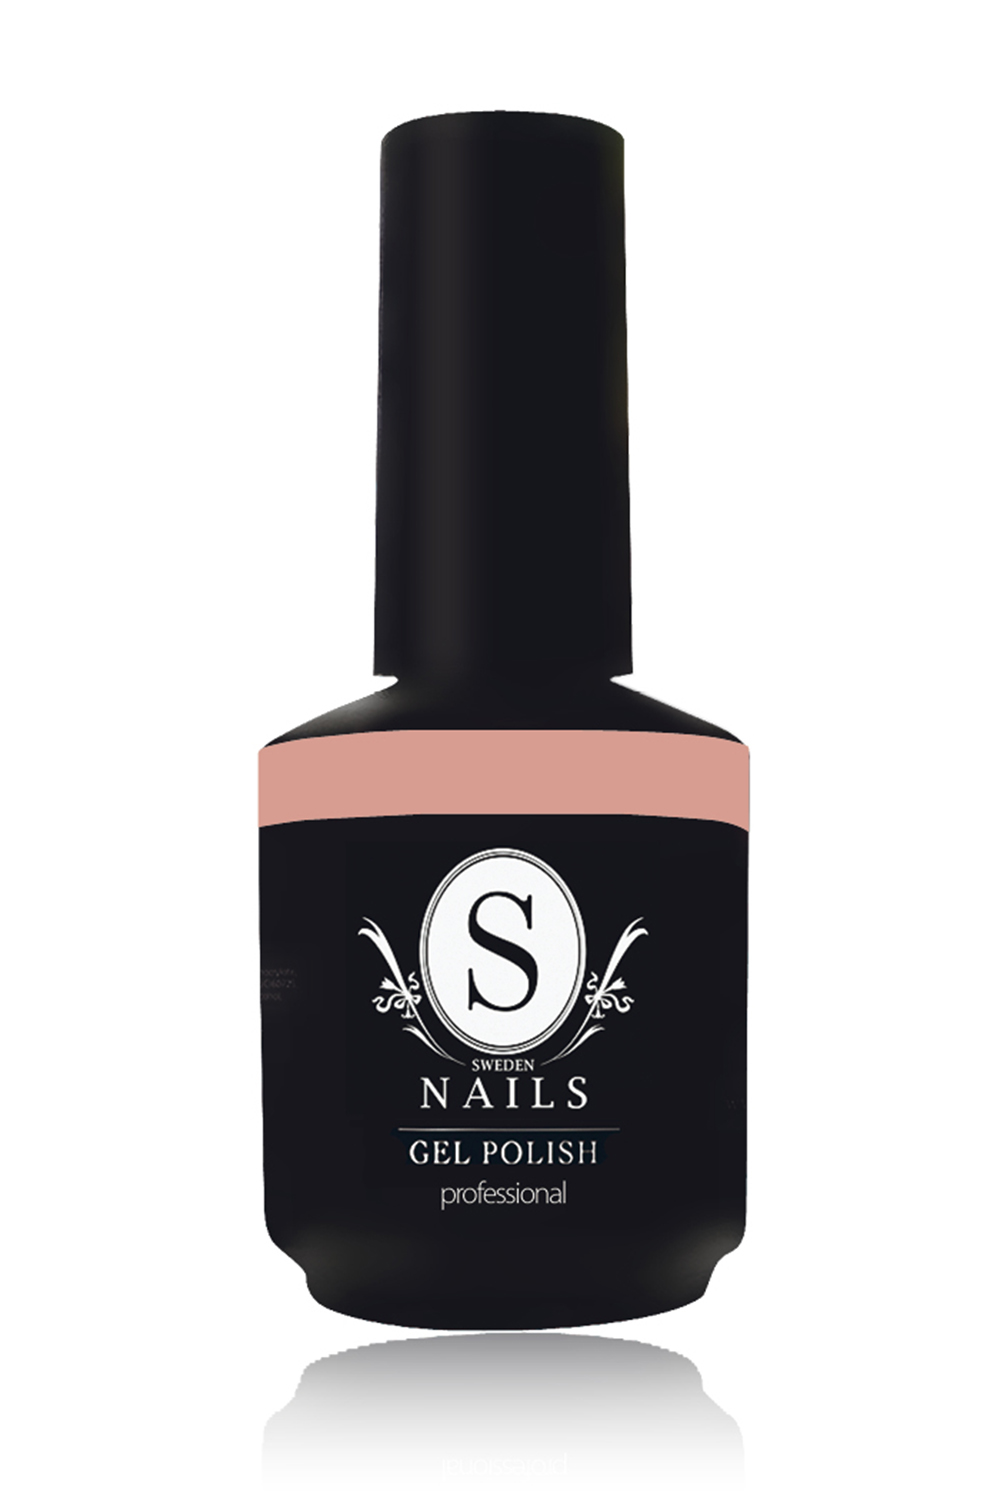 Foto Gelpolish Sweden Nails 114